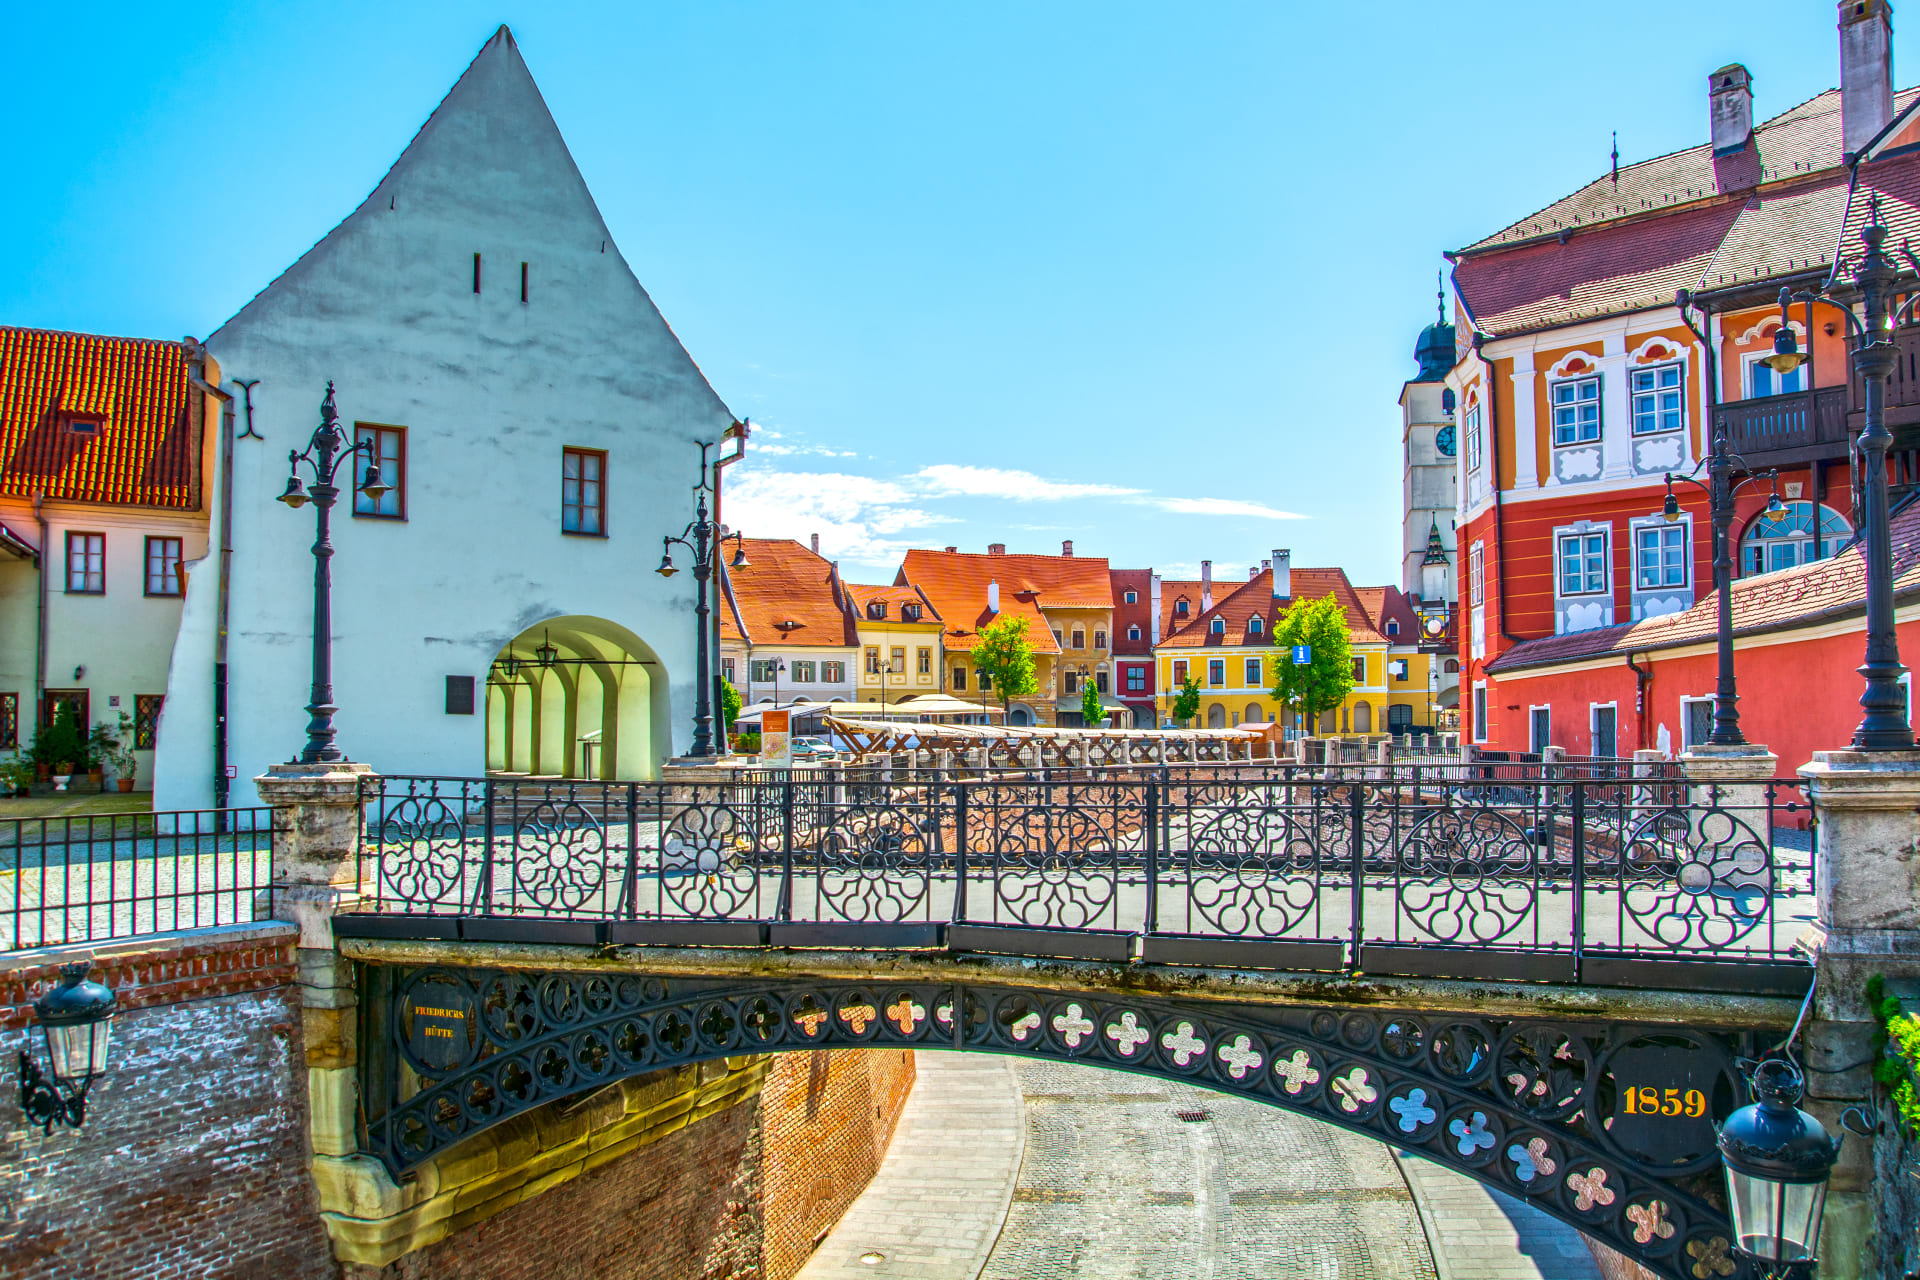 Transylvania - The medieval city of Sibiu, the capital of Transylvania in 17th century